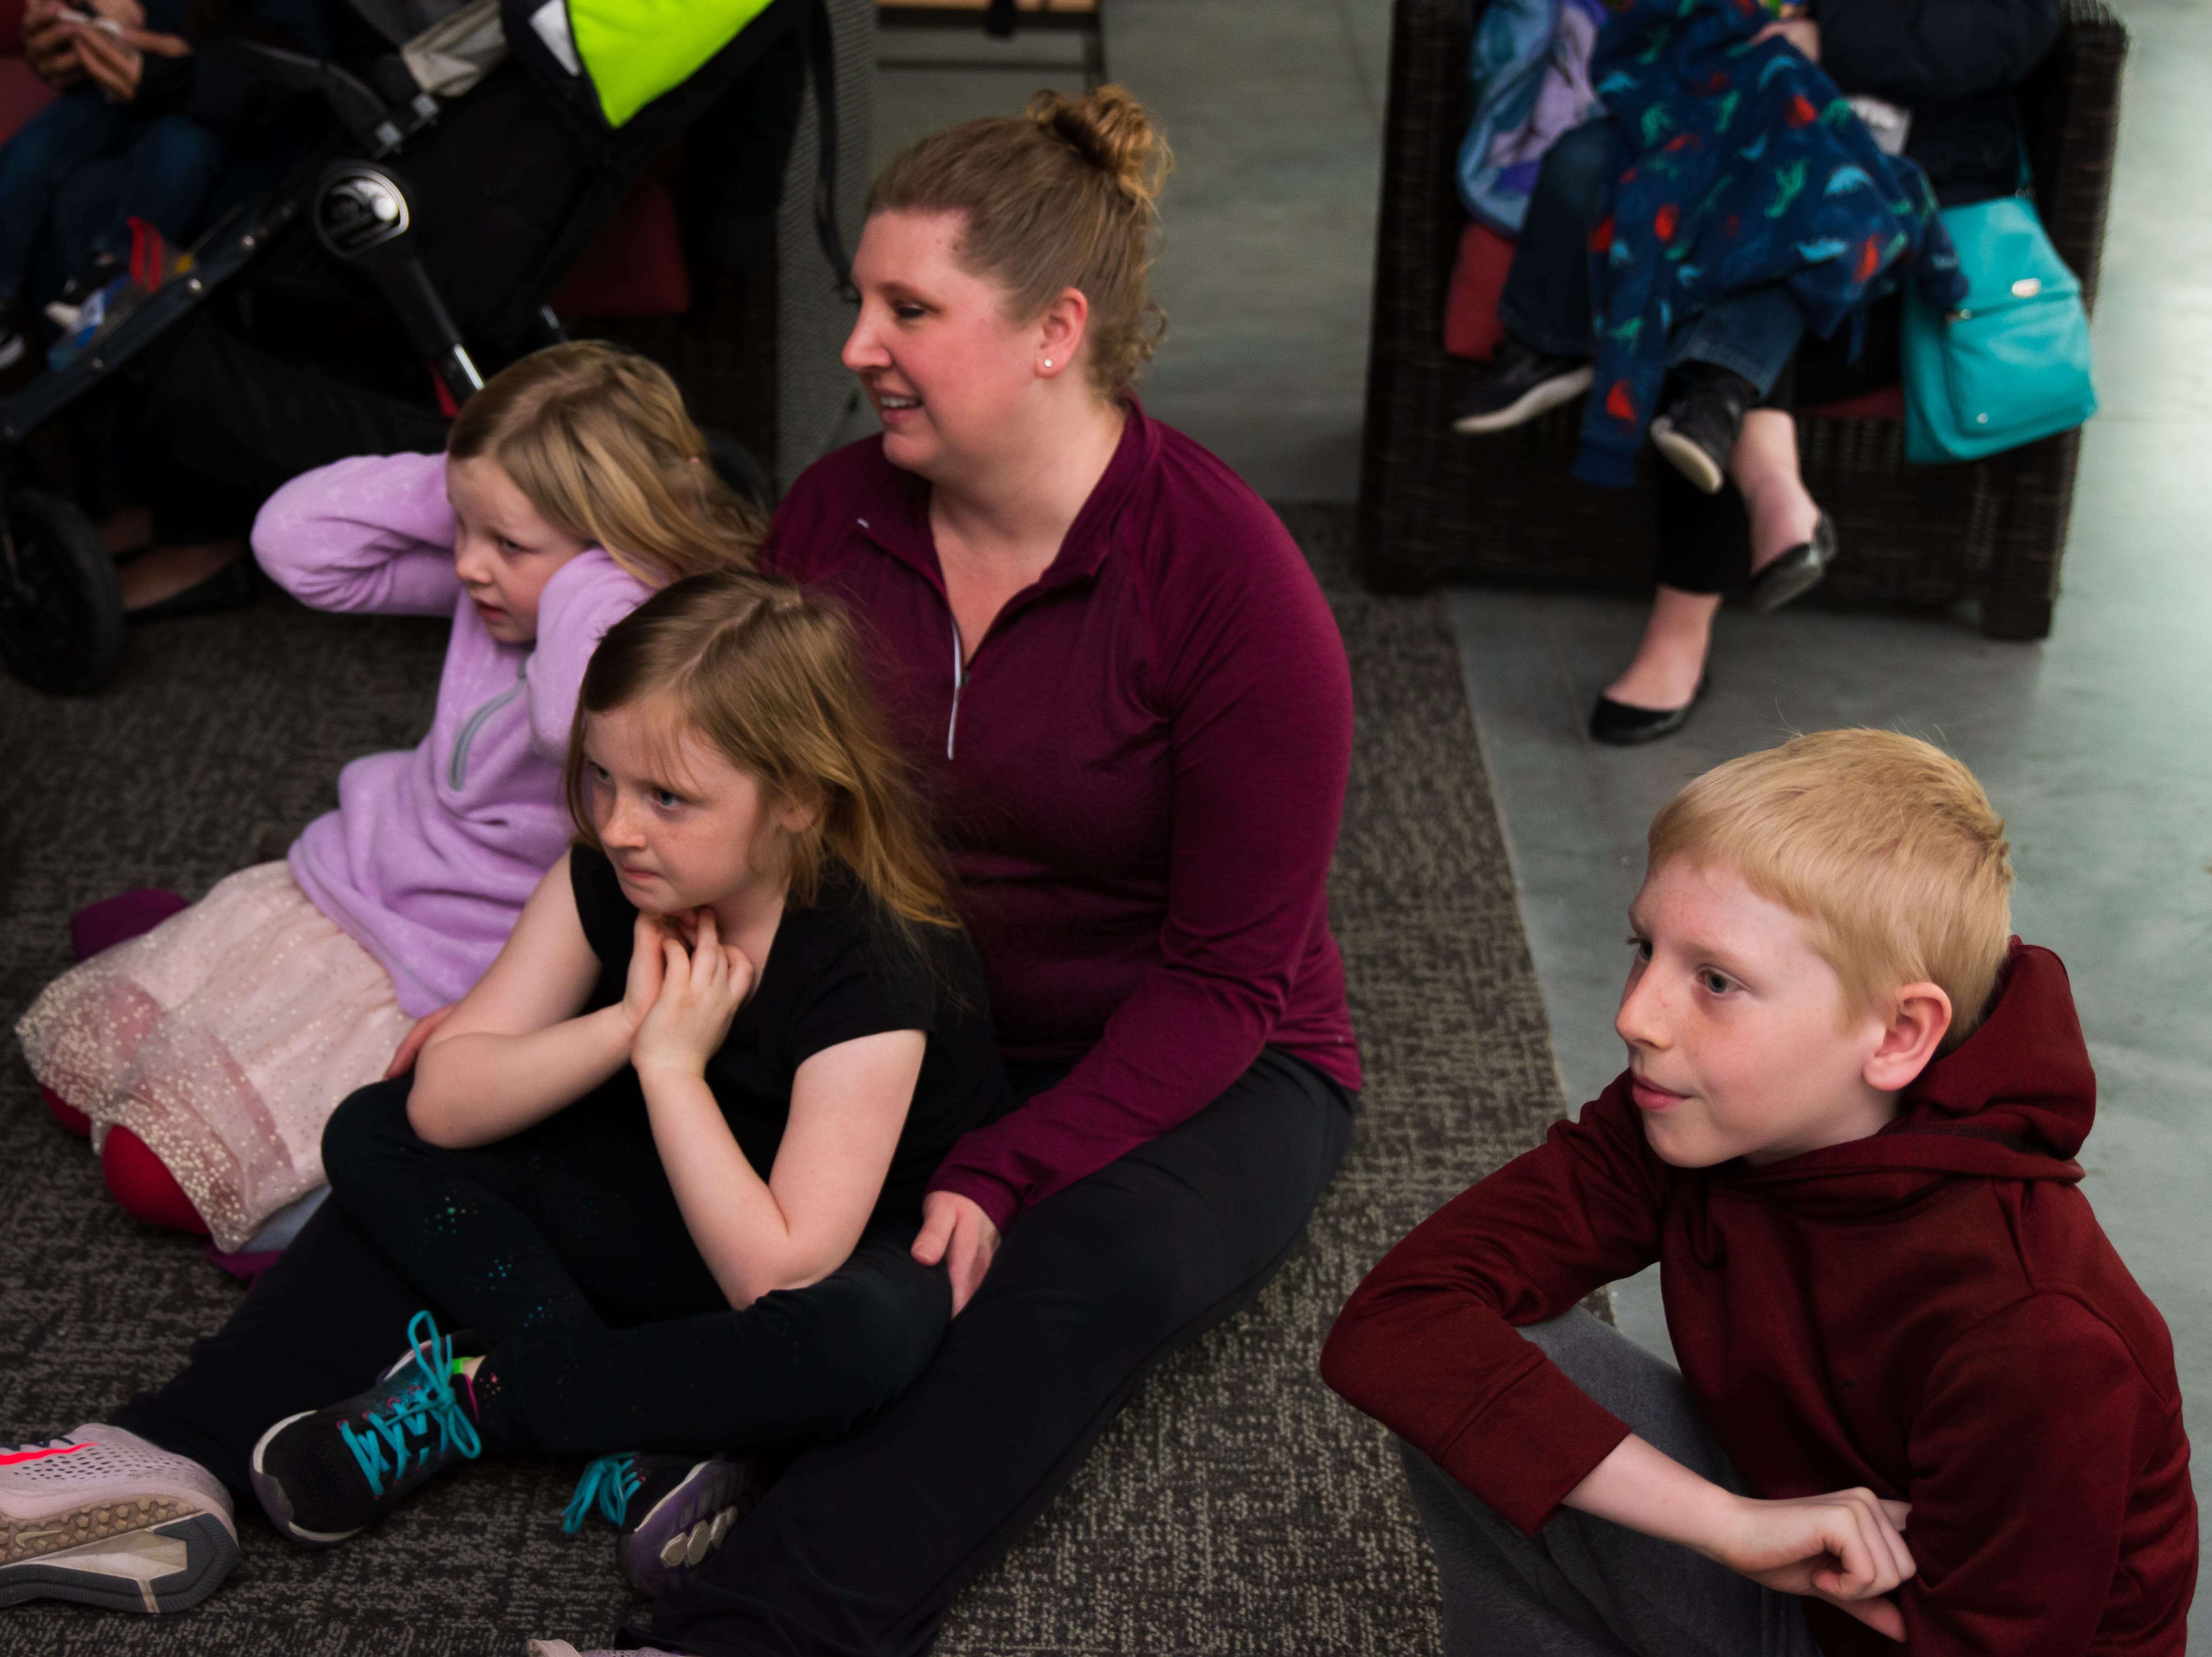 Jessica, Ayla, 7, Hadley 5, and Parker Low, 10, all of Ankeny, watch an experiment Wednesday, March 20, 2019, during a Science Center program at the Outlets of Des Moines in Altoona.